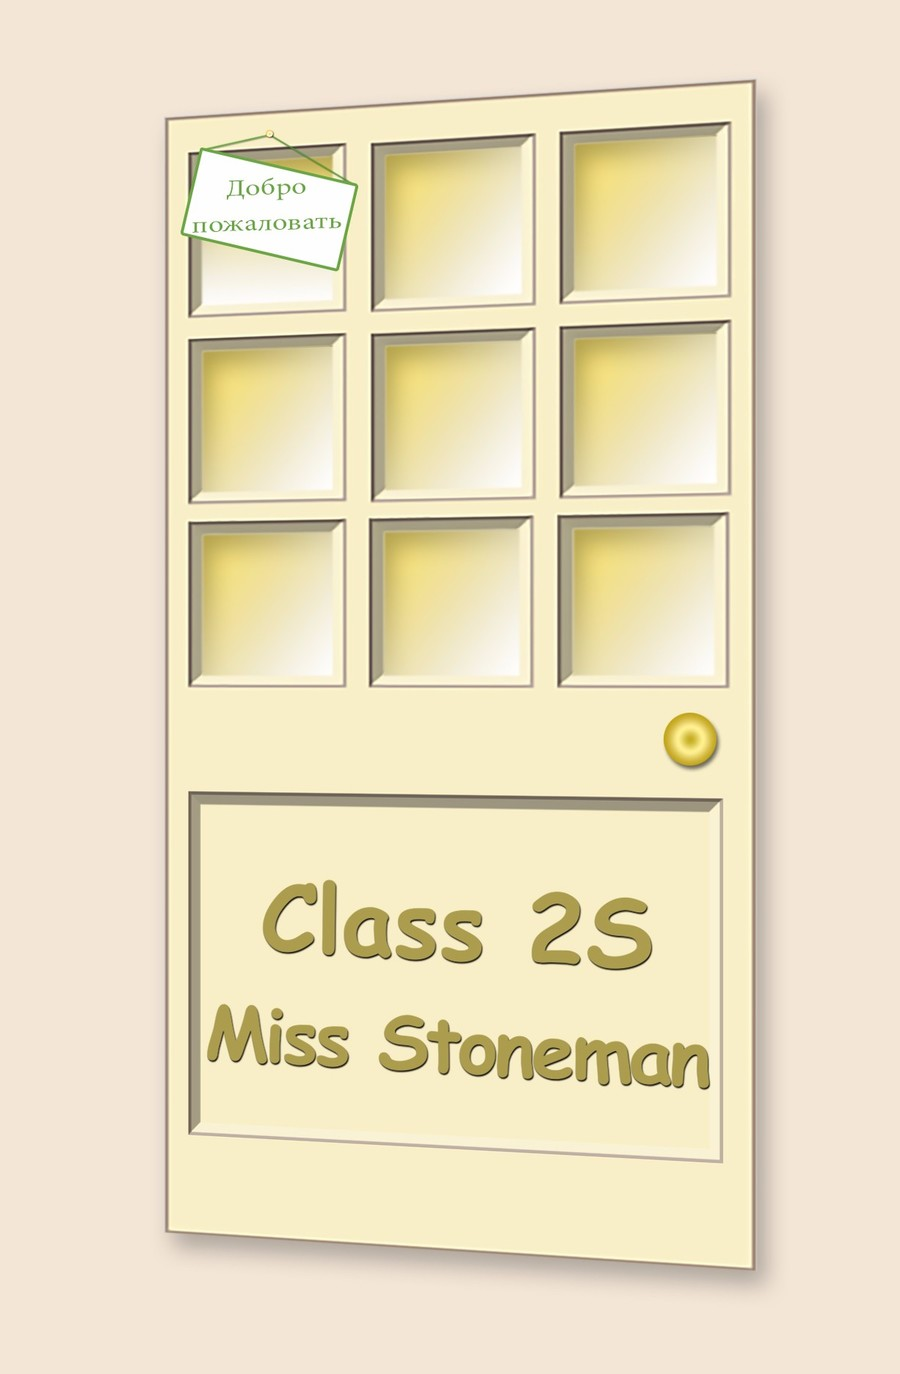 Go to Class 2S